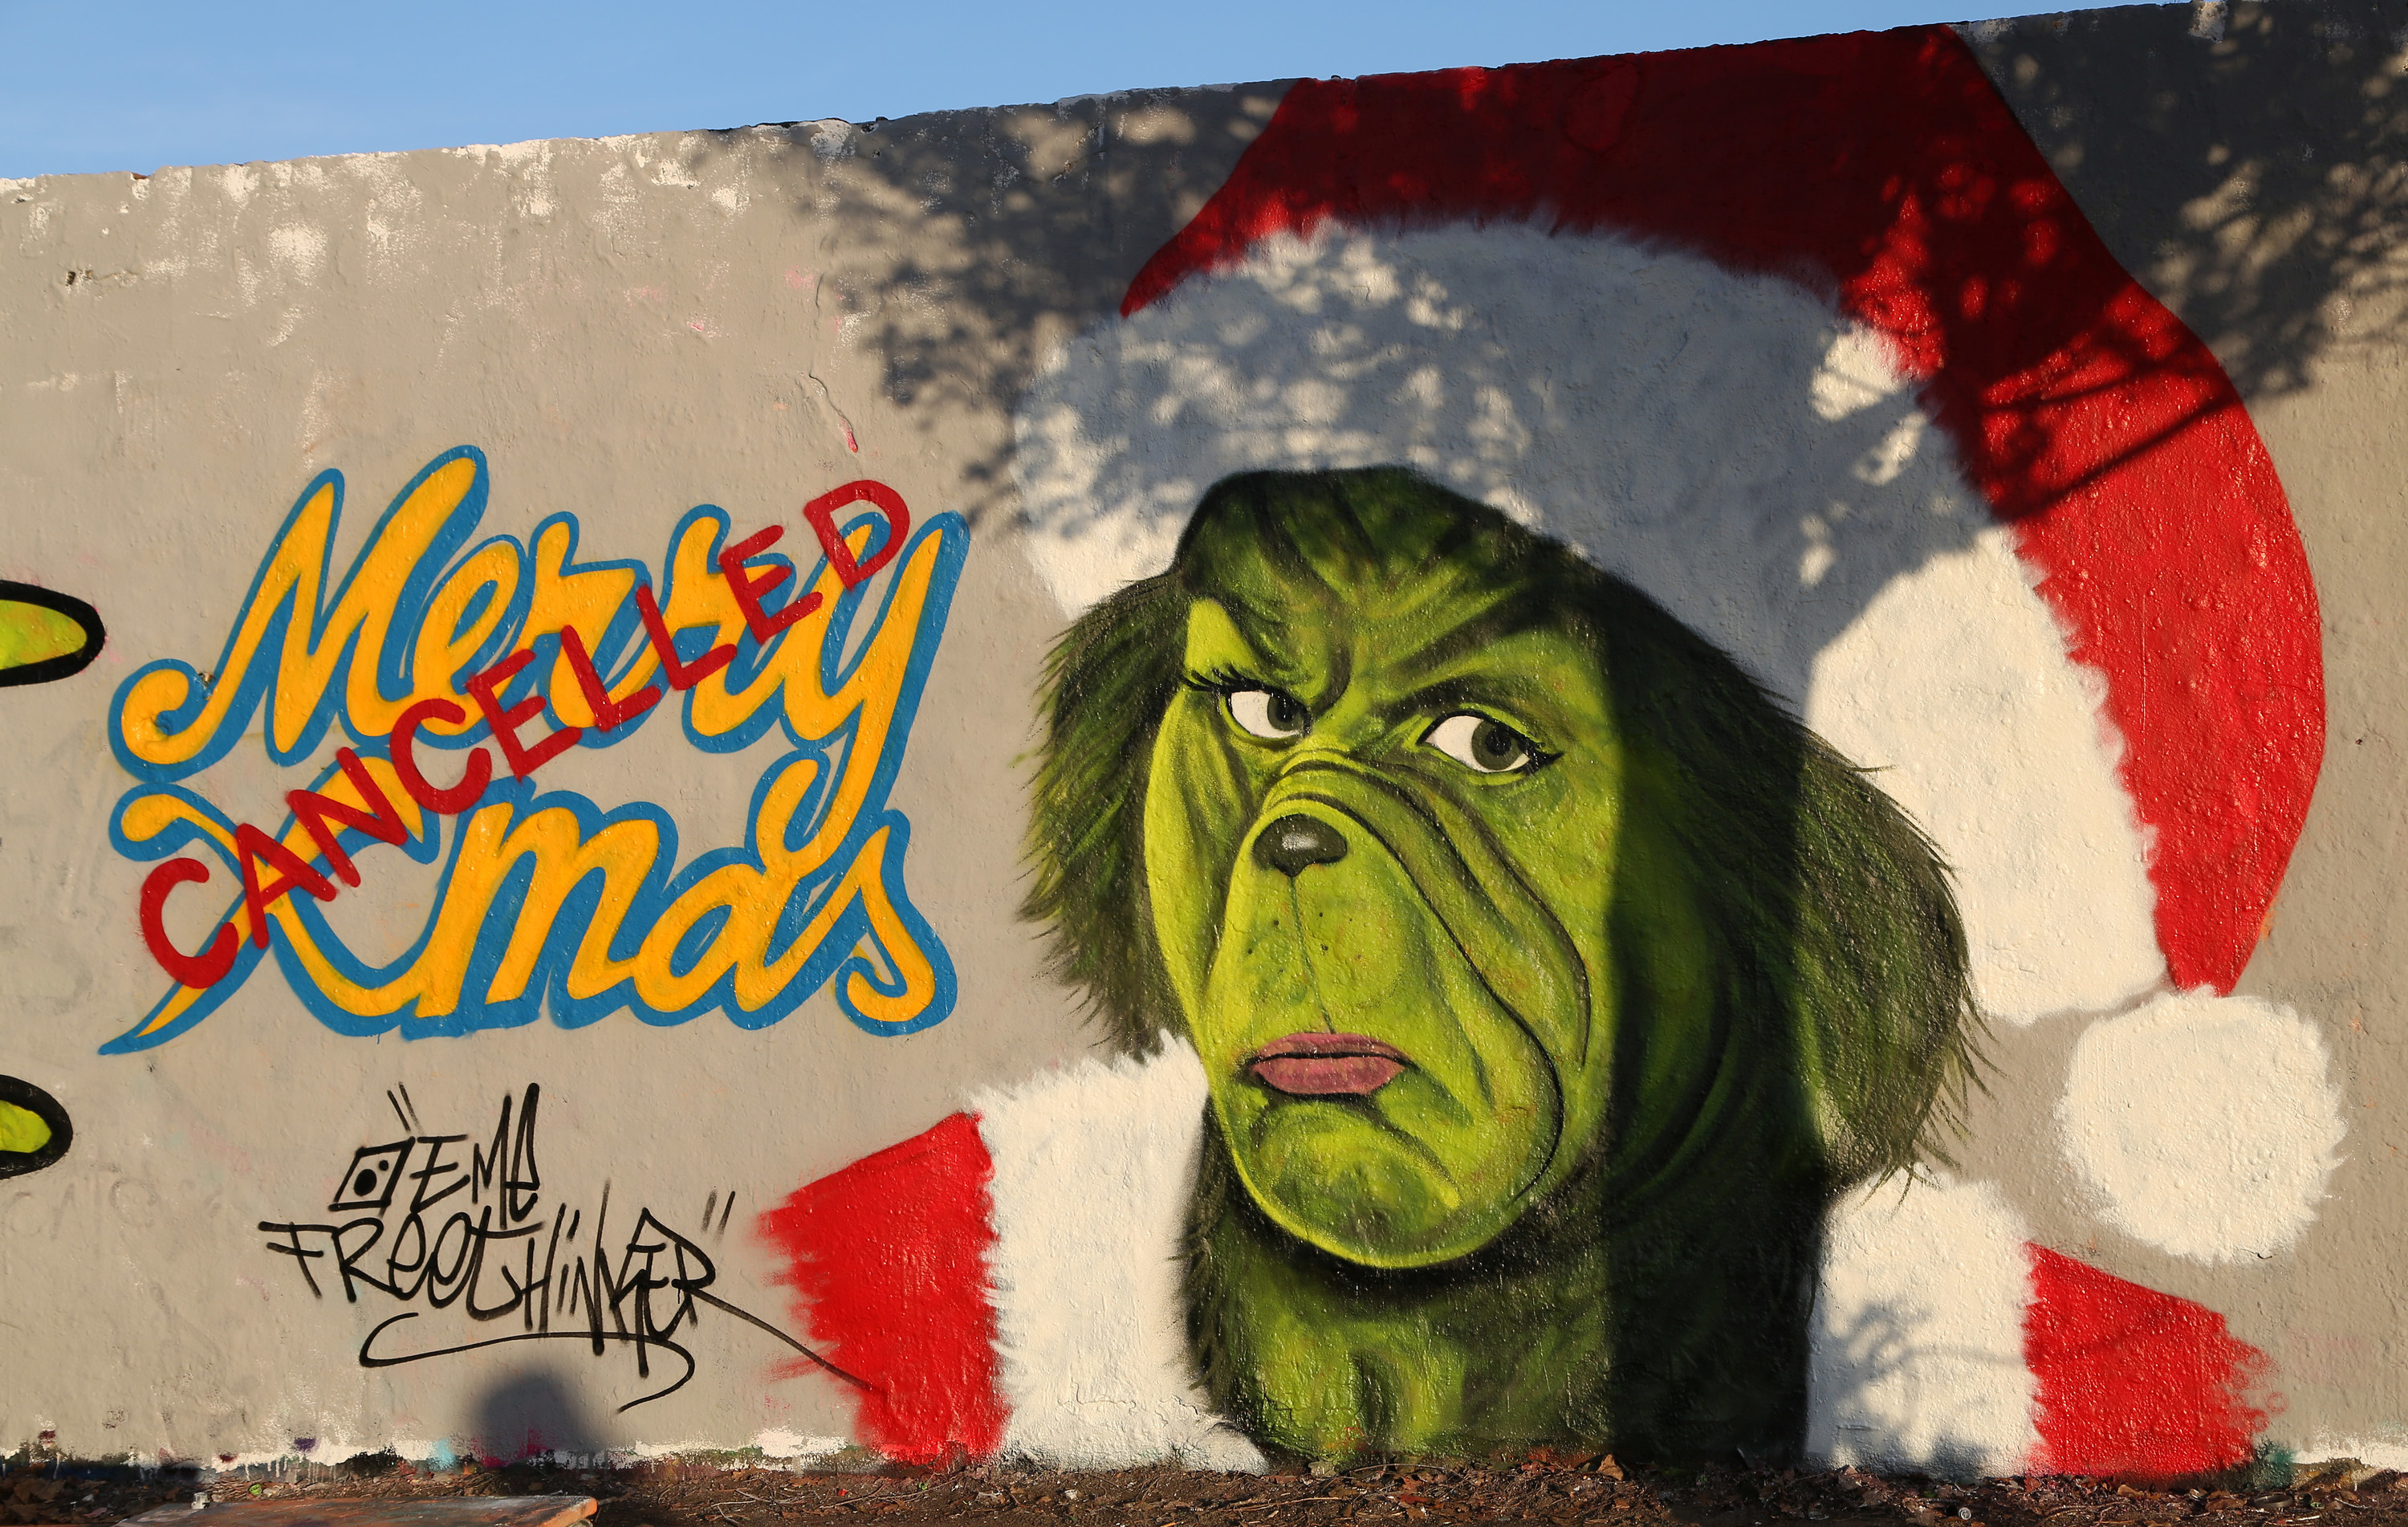 A graffiti drawing of the Grinch on a wall